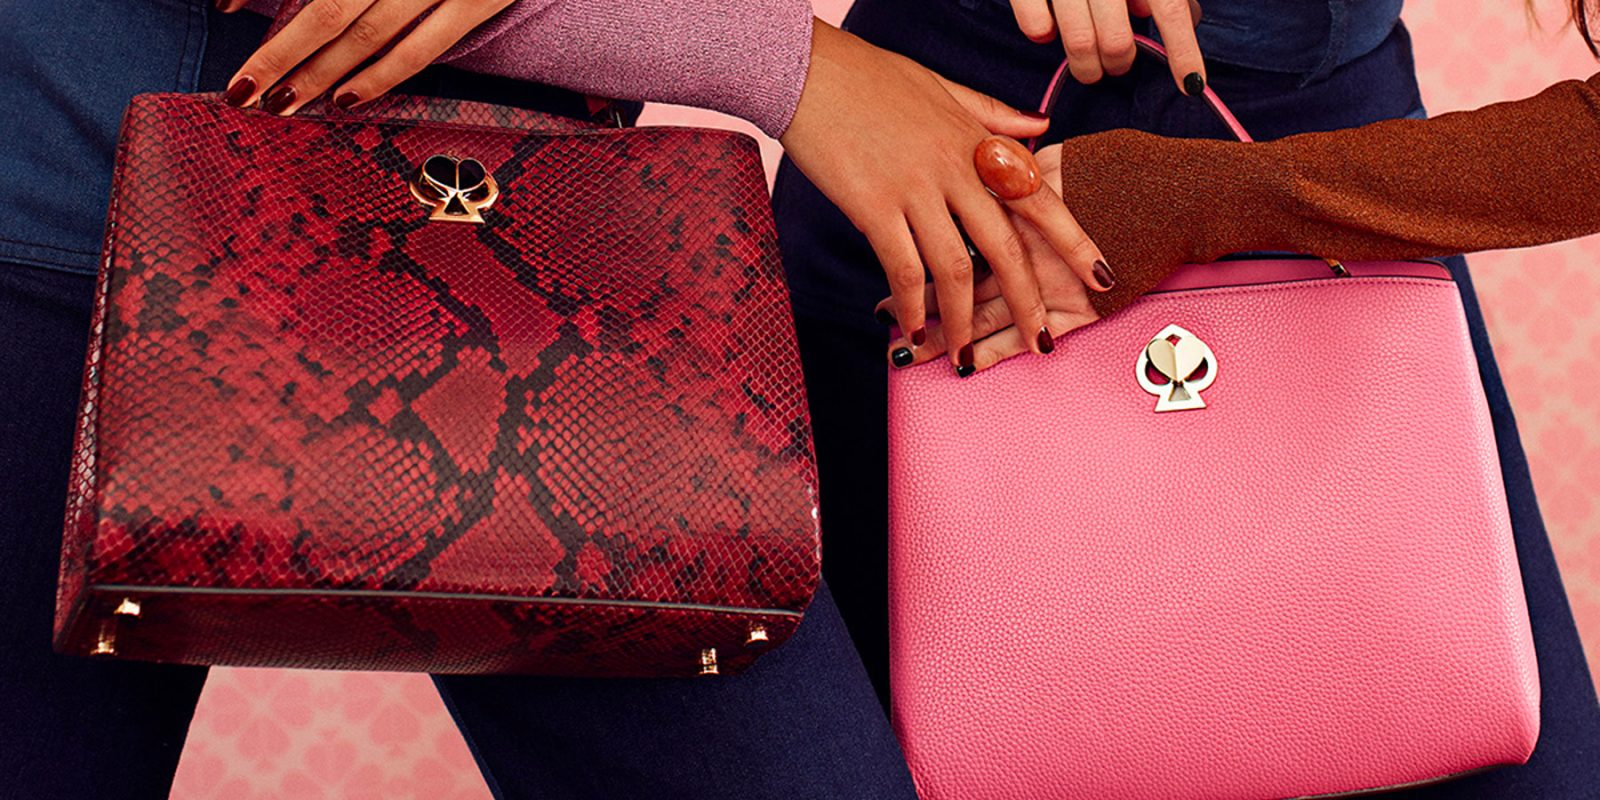 Kate Spade refreshes your handbags with 30% off sitewide + free shipping